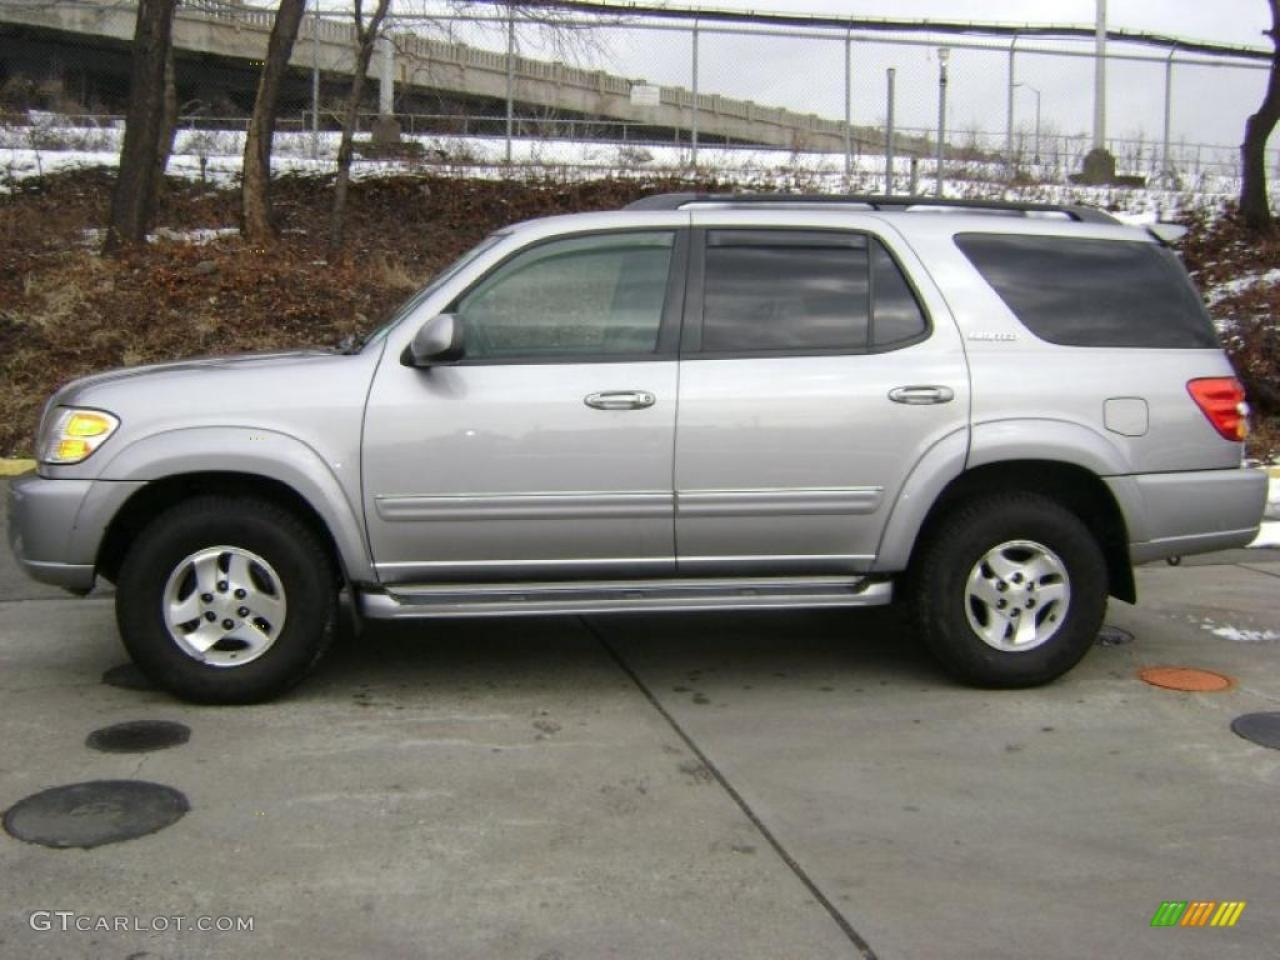 hight resolution of  wiring diagram 800 1024 1280 1600 origin 2002 toyota sequoia